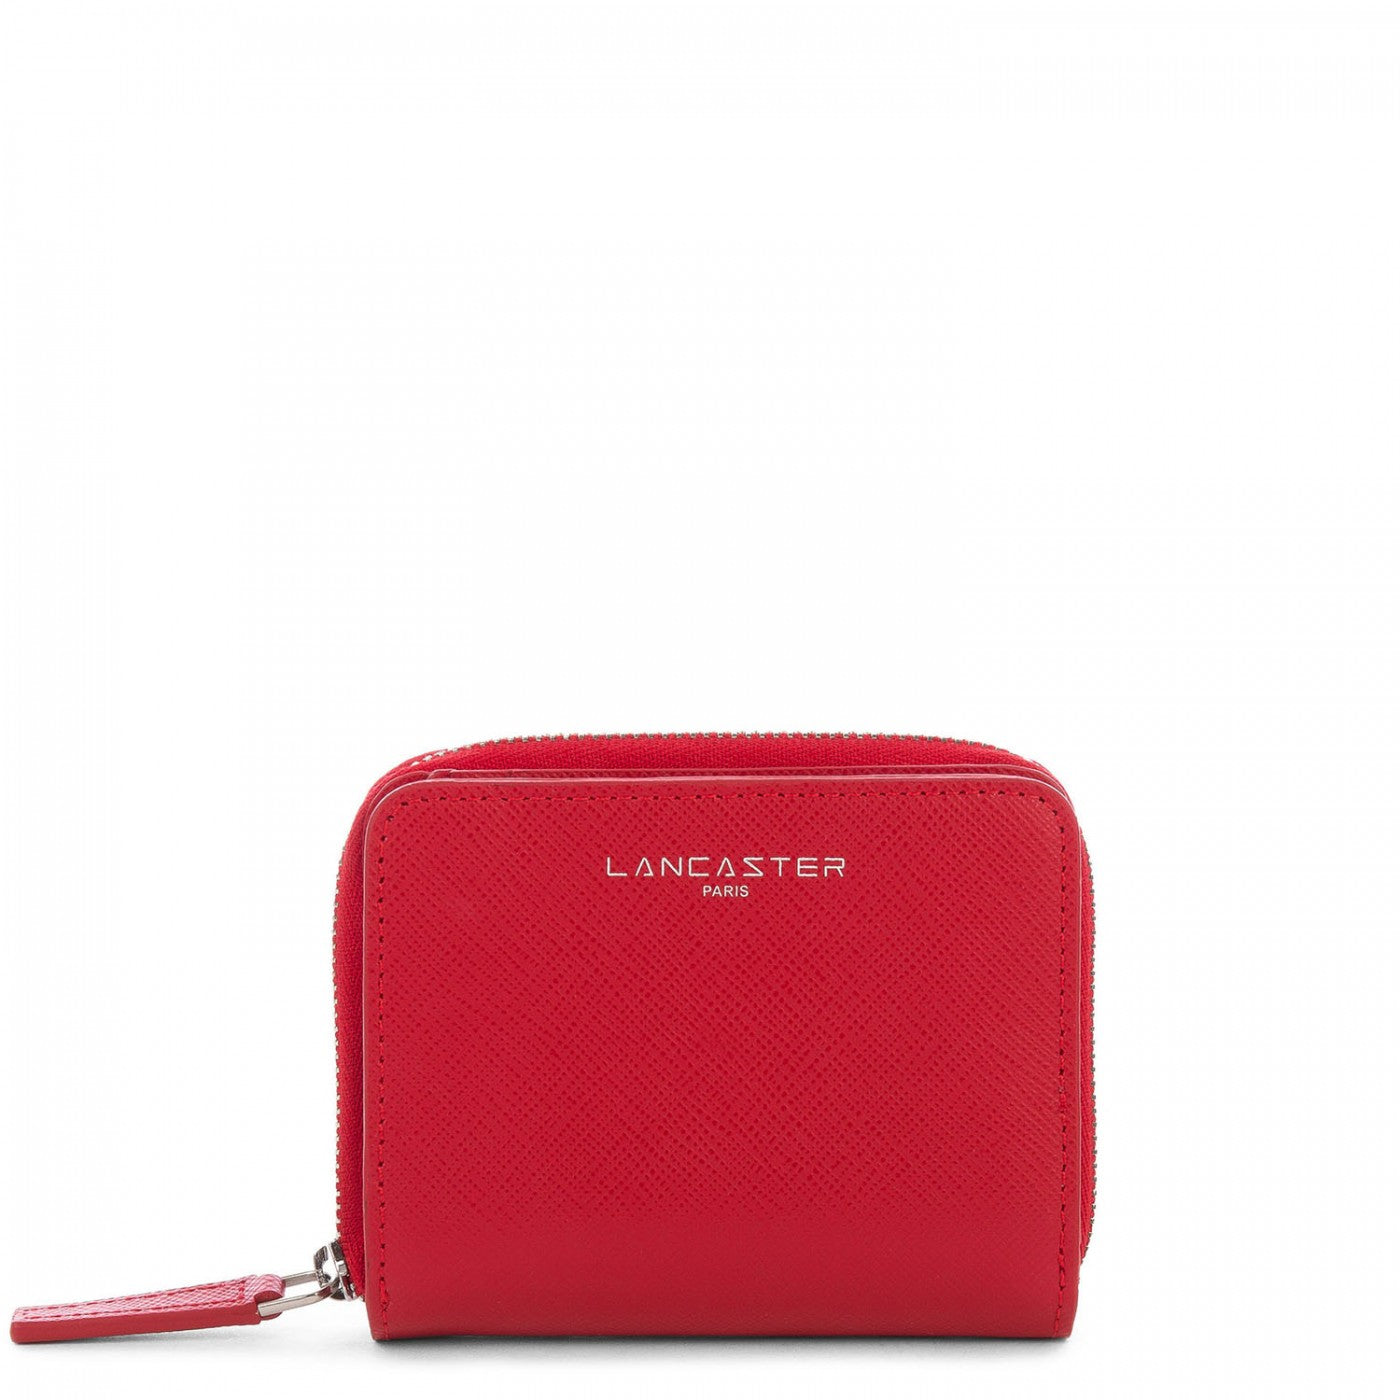 LANCASTER COIN PURSE - RED